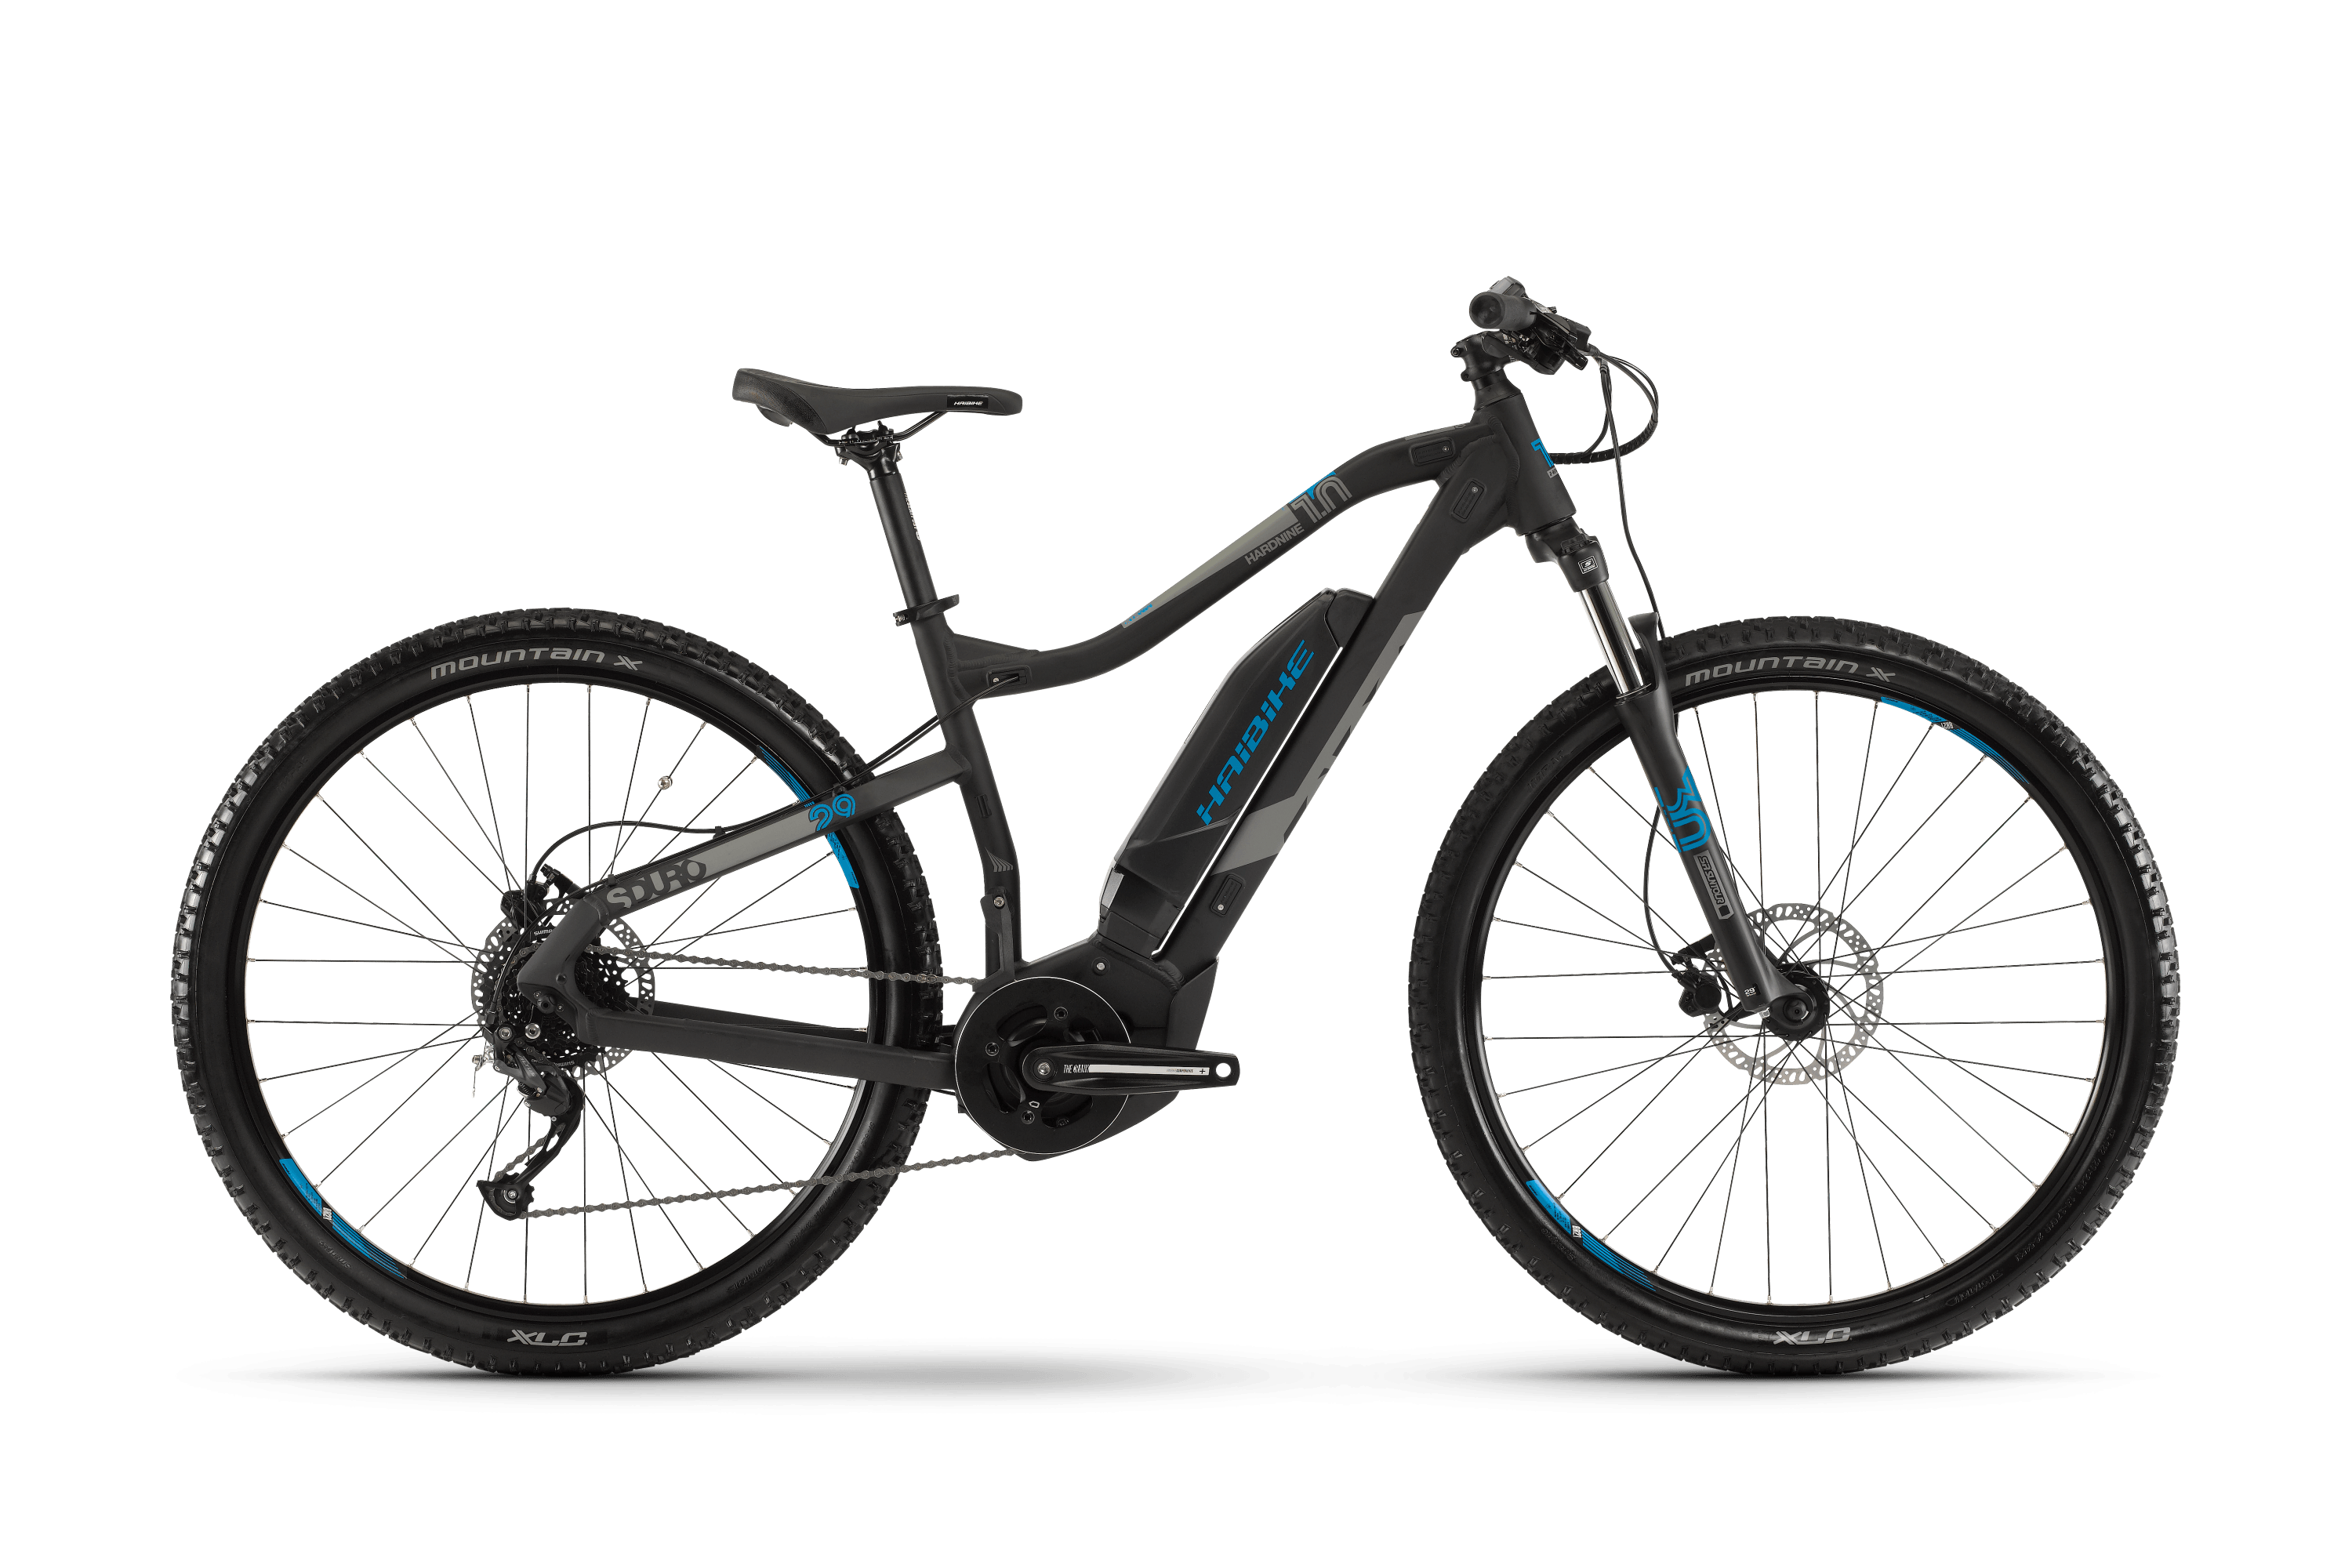 https://w8w5m3f8.stackpathcdn.com/11996/vtt-electrique-haibike-sduro-hardnine-10.jpg